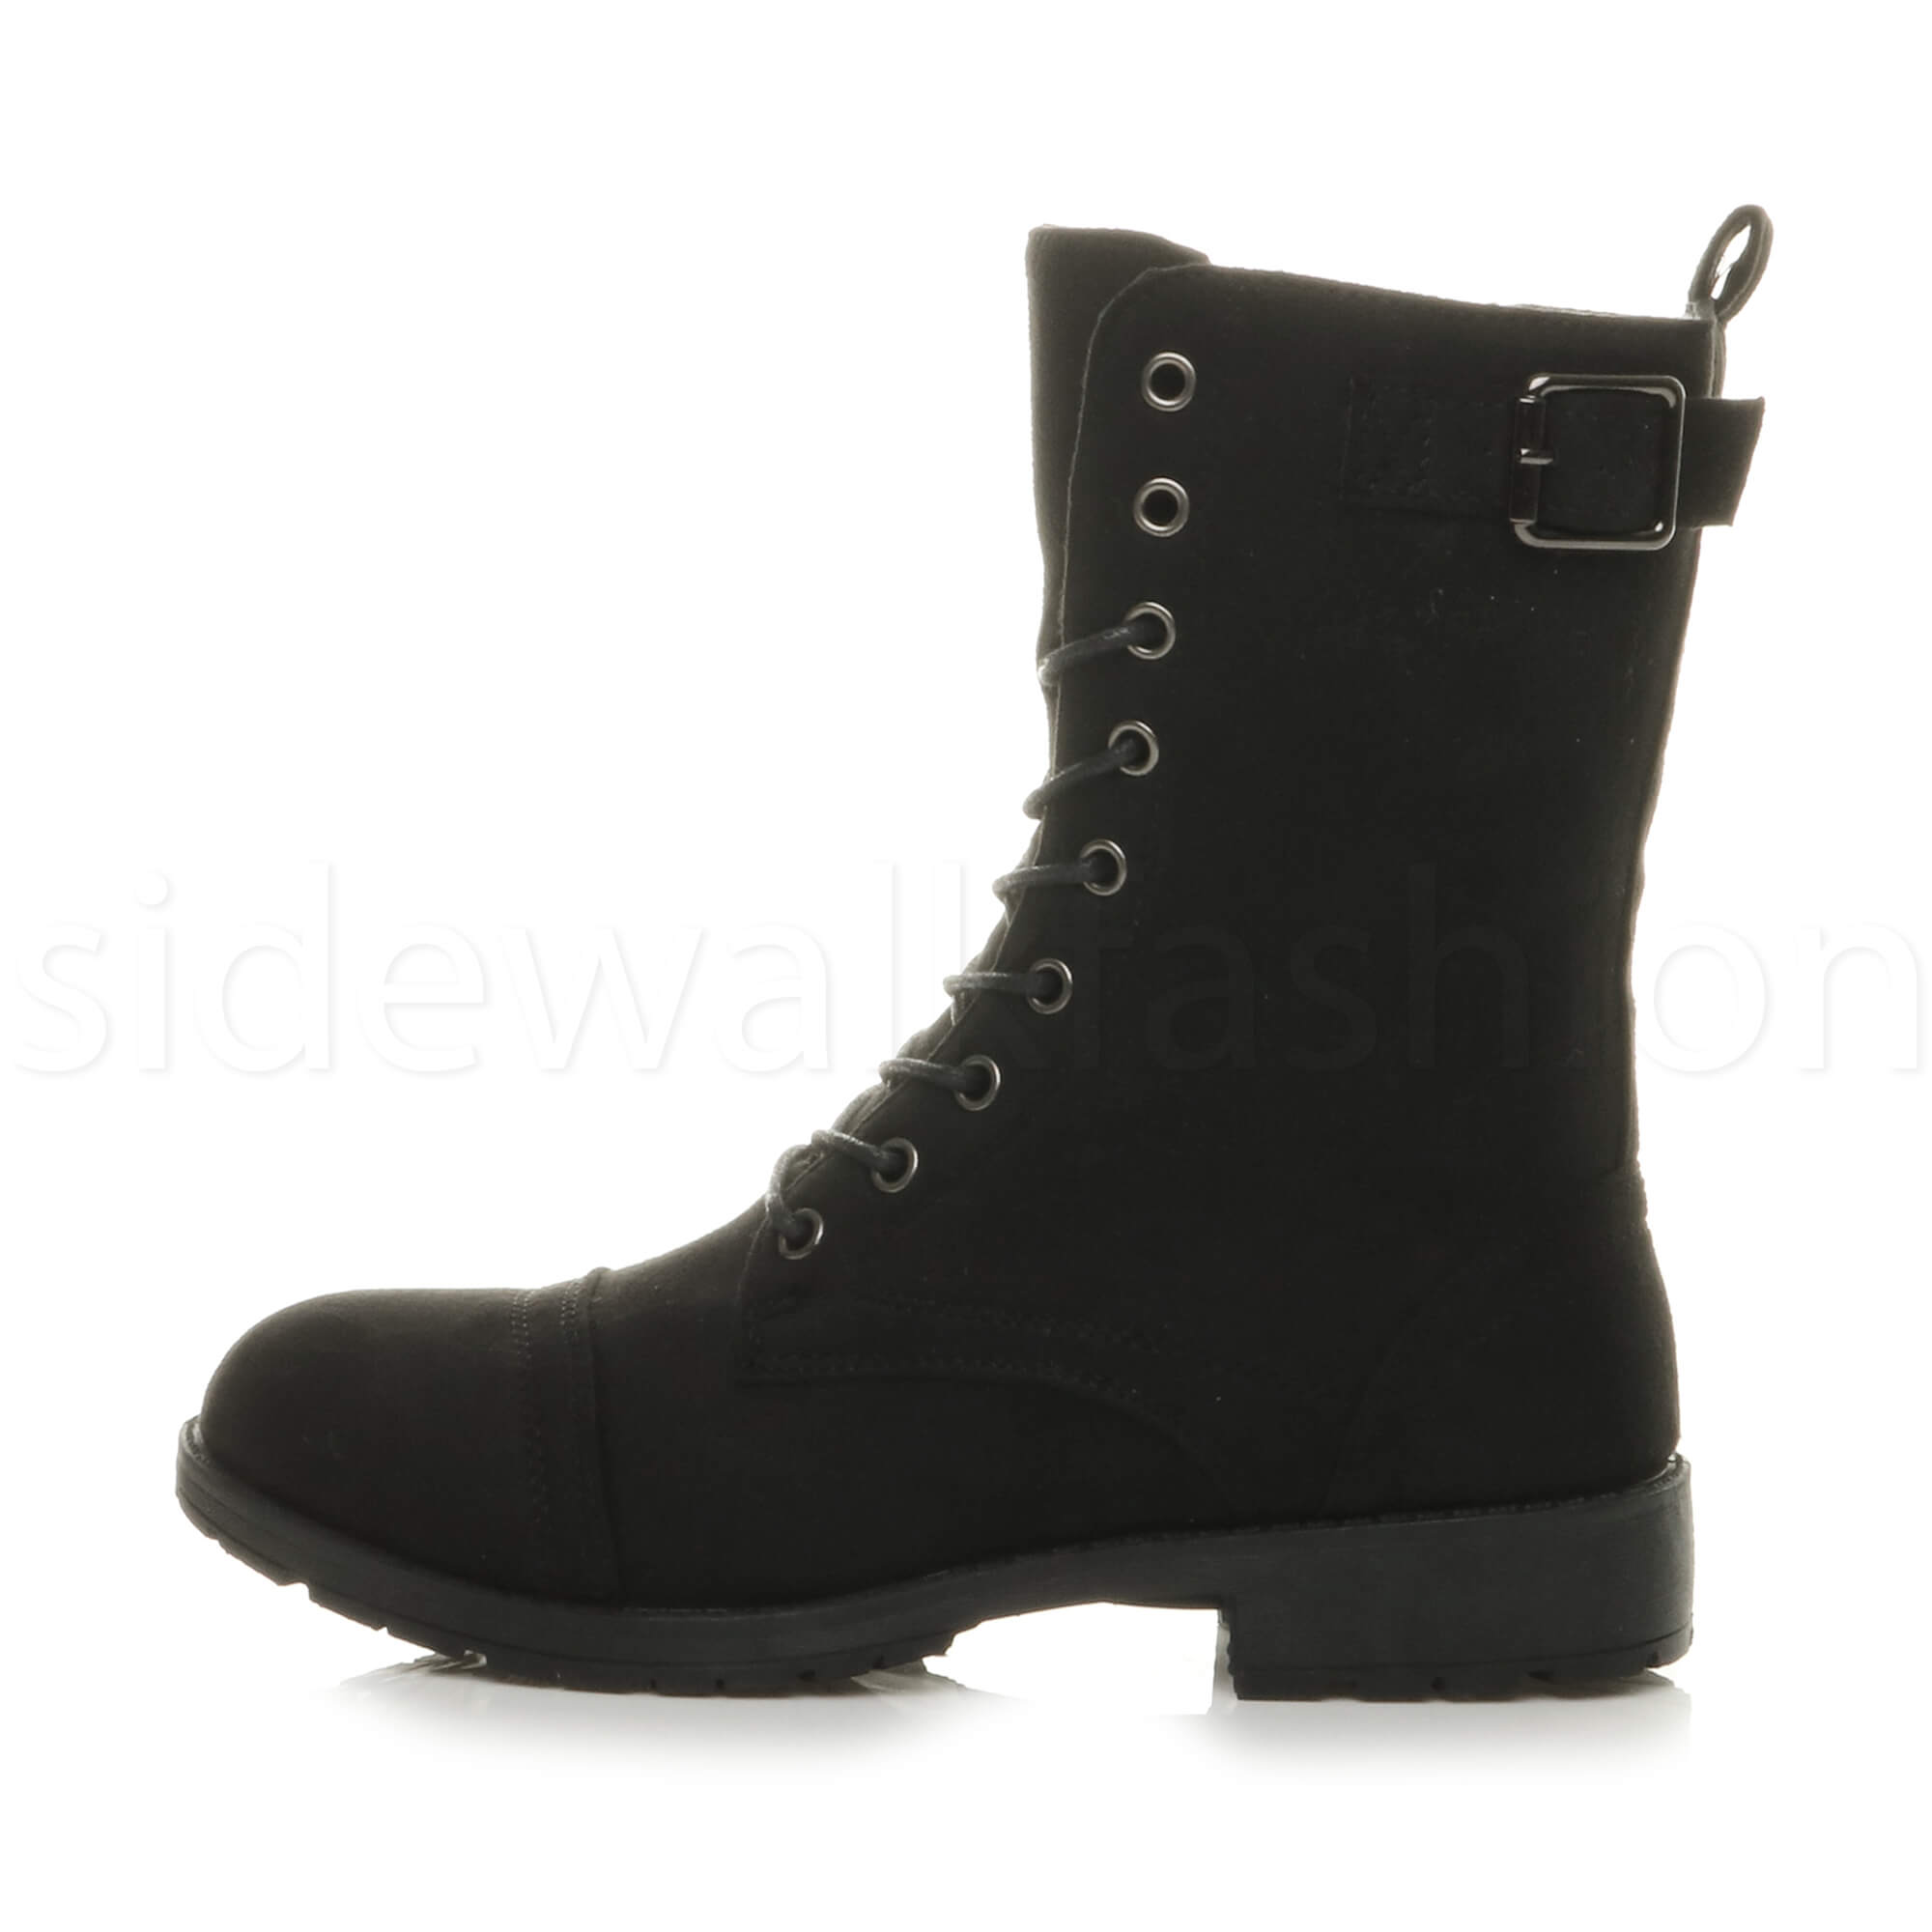 Womens-ladies-low-heel-flat-lace-up-zip-combat-biker-military-ankle-boots-size thumbnail 27